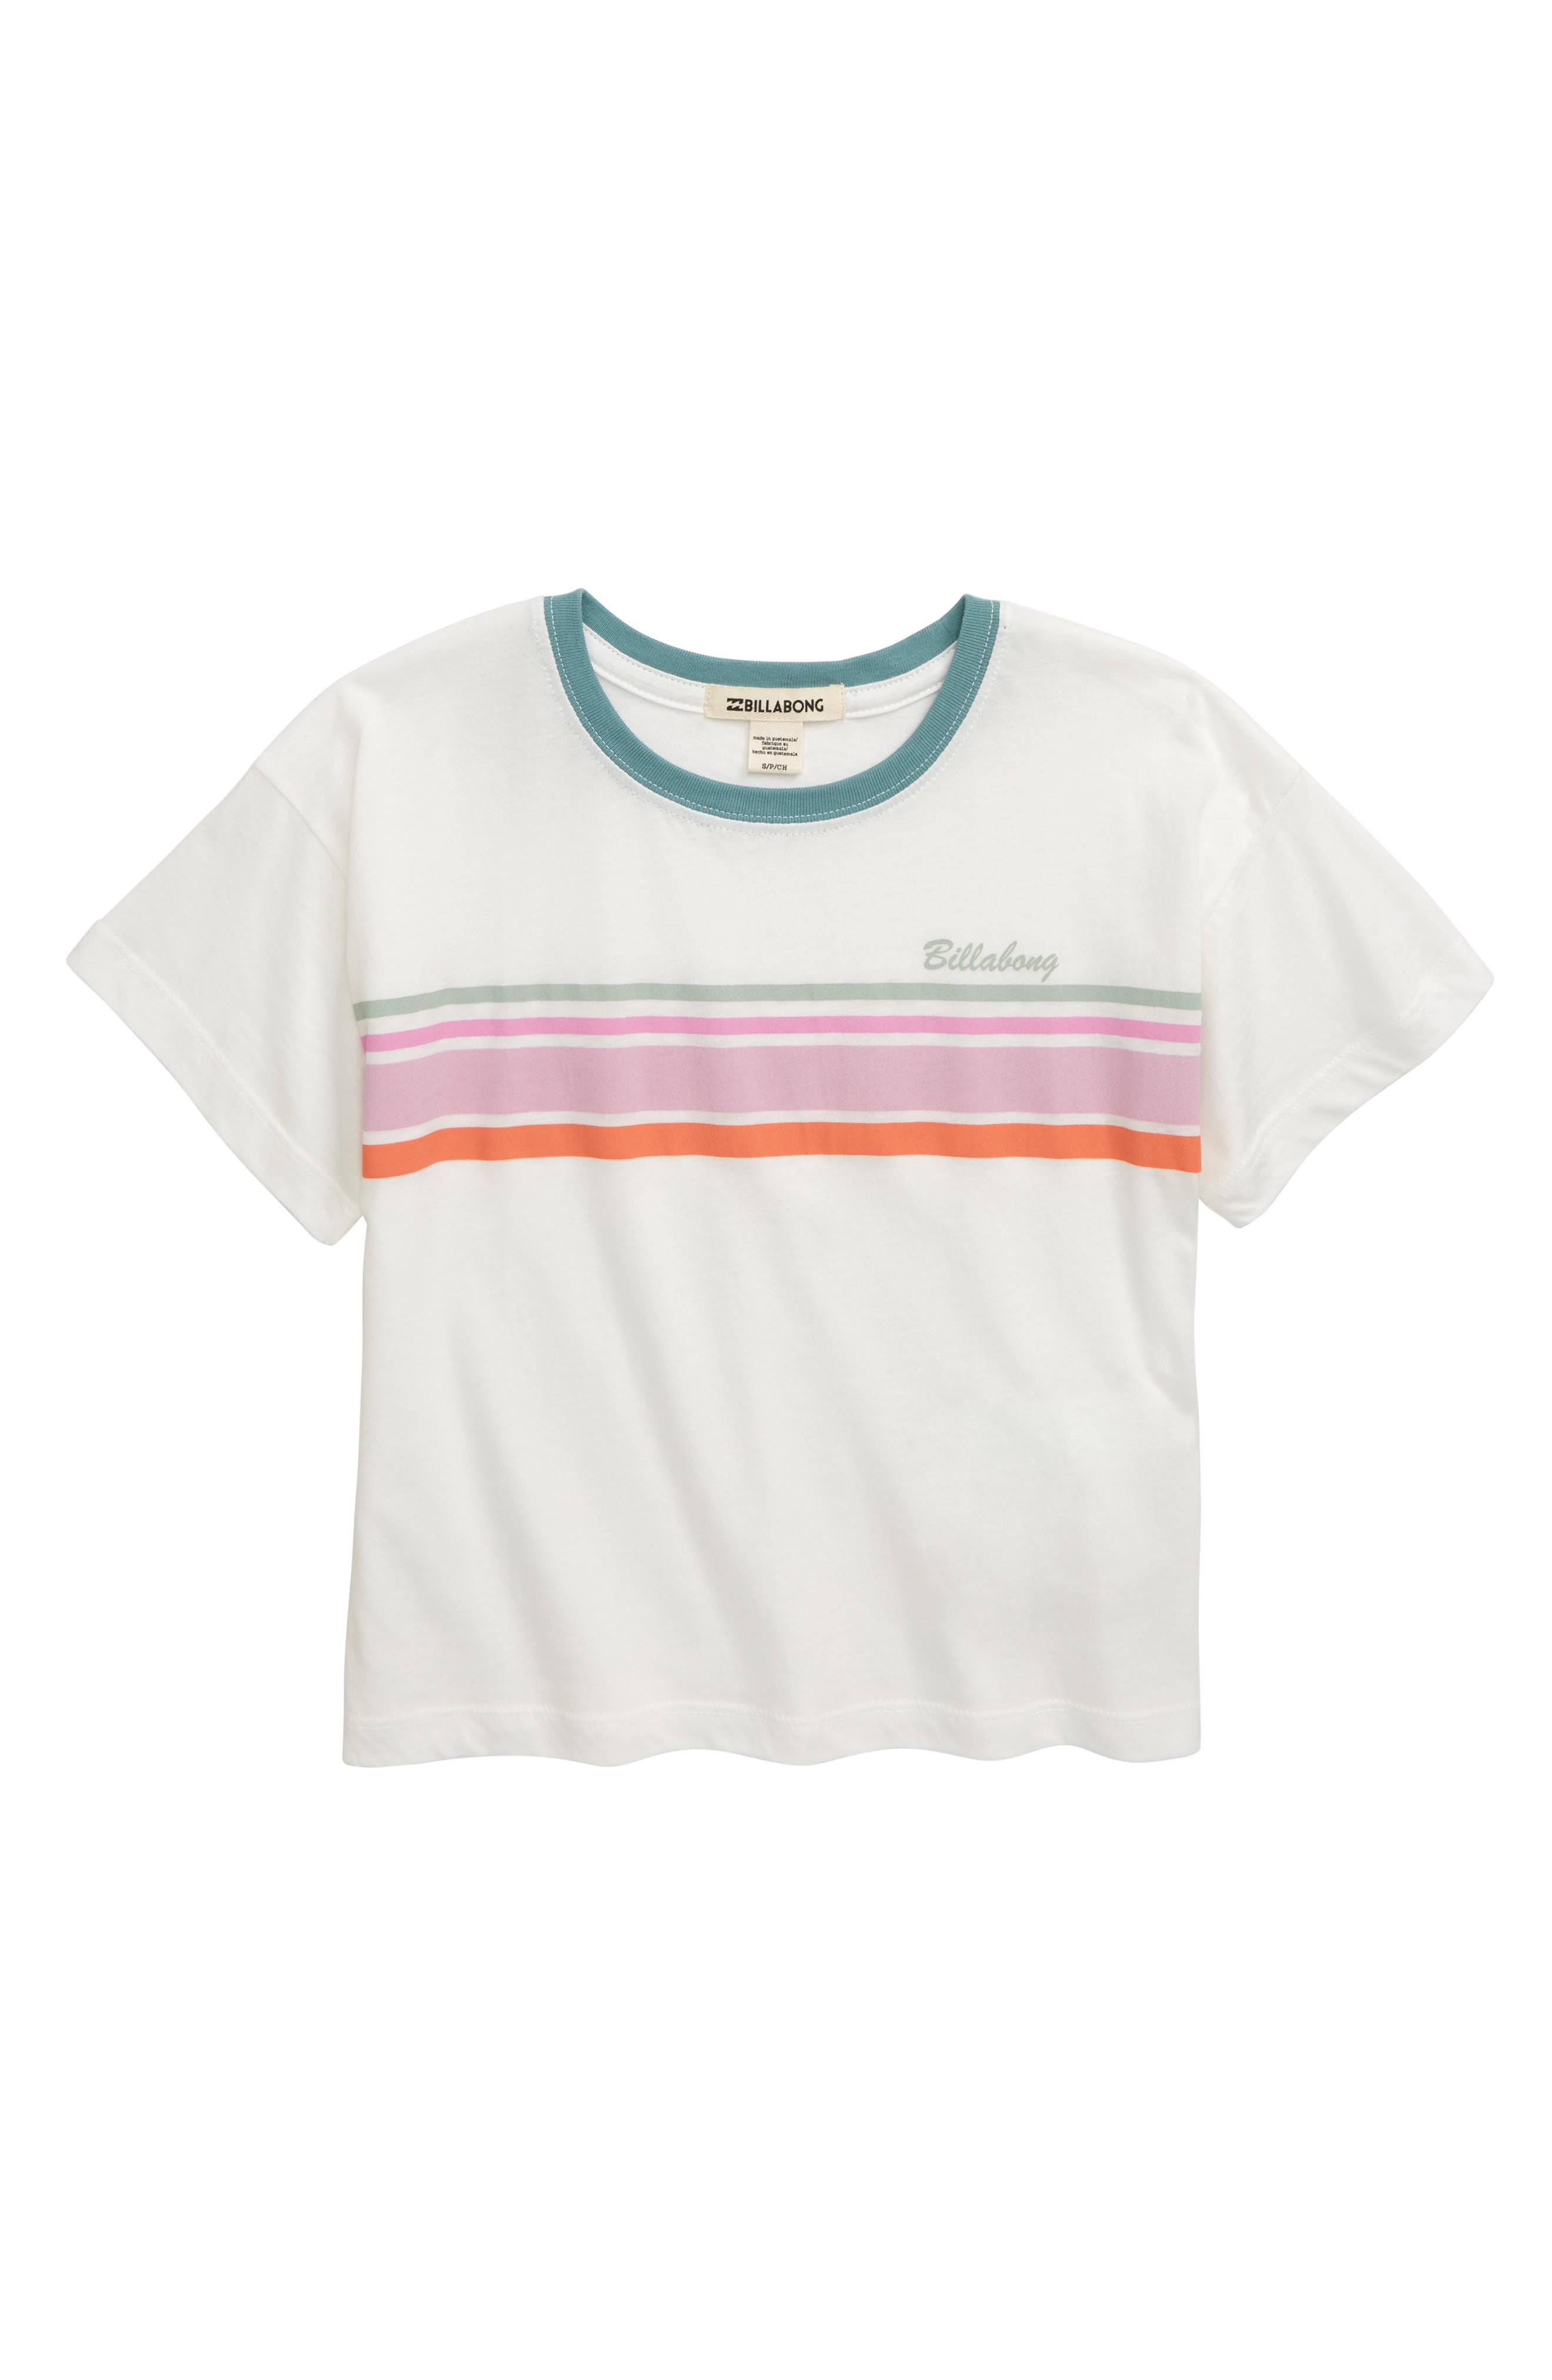 Girls Billabong Seeing Stripes Tee